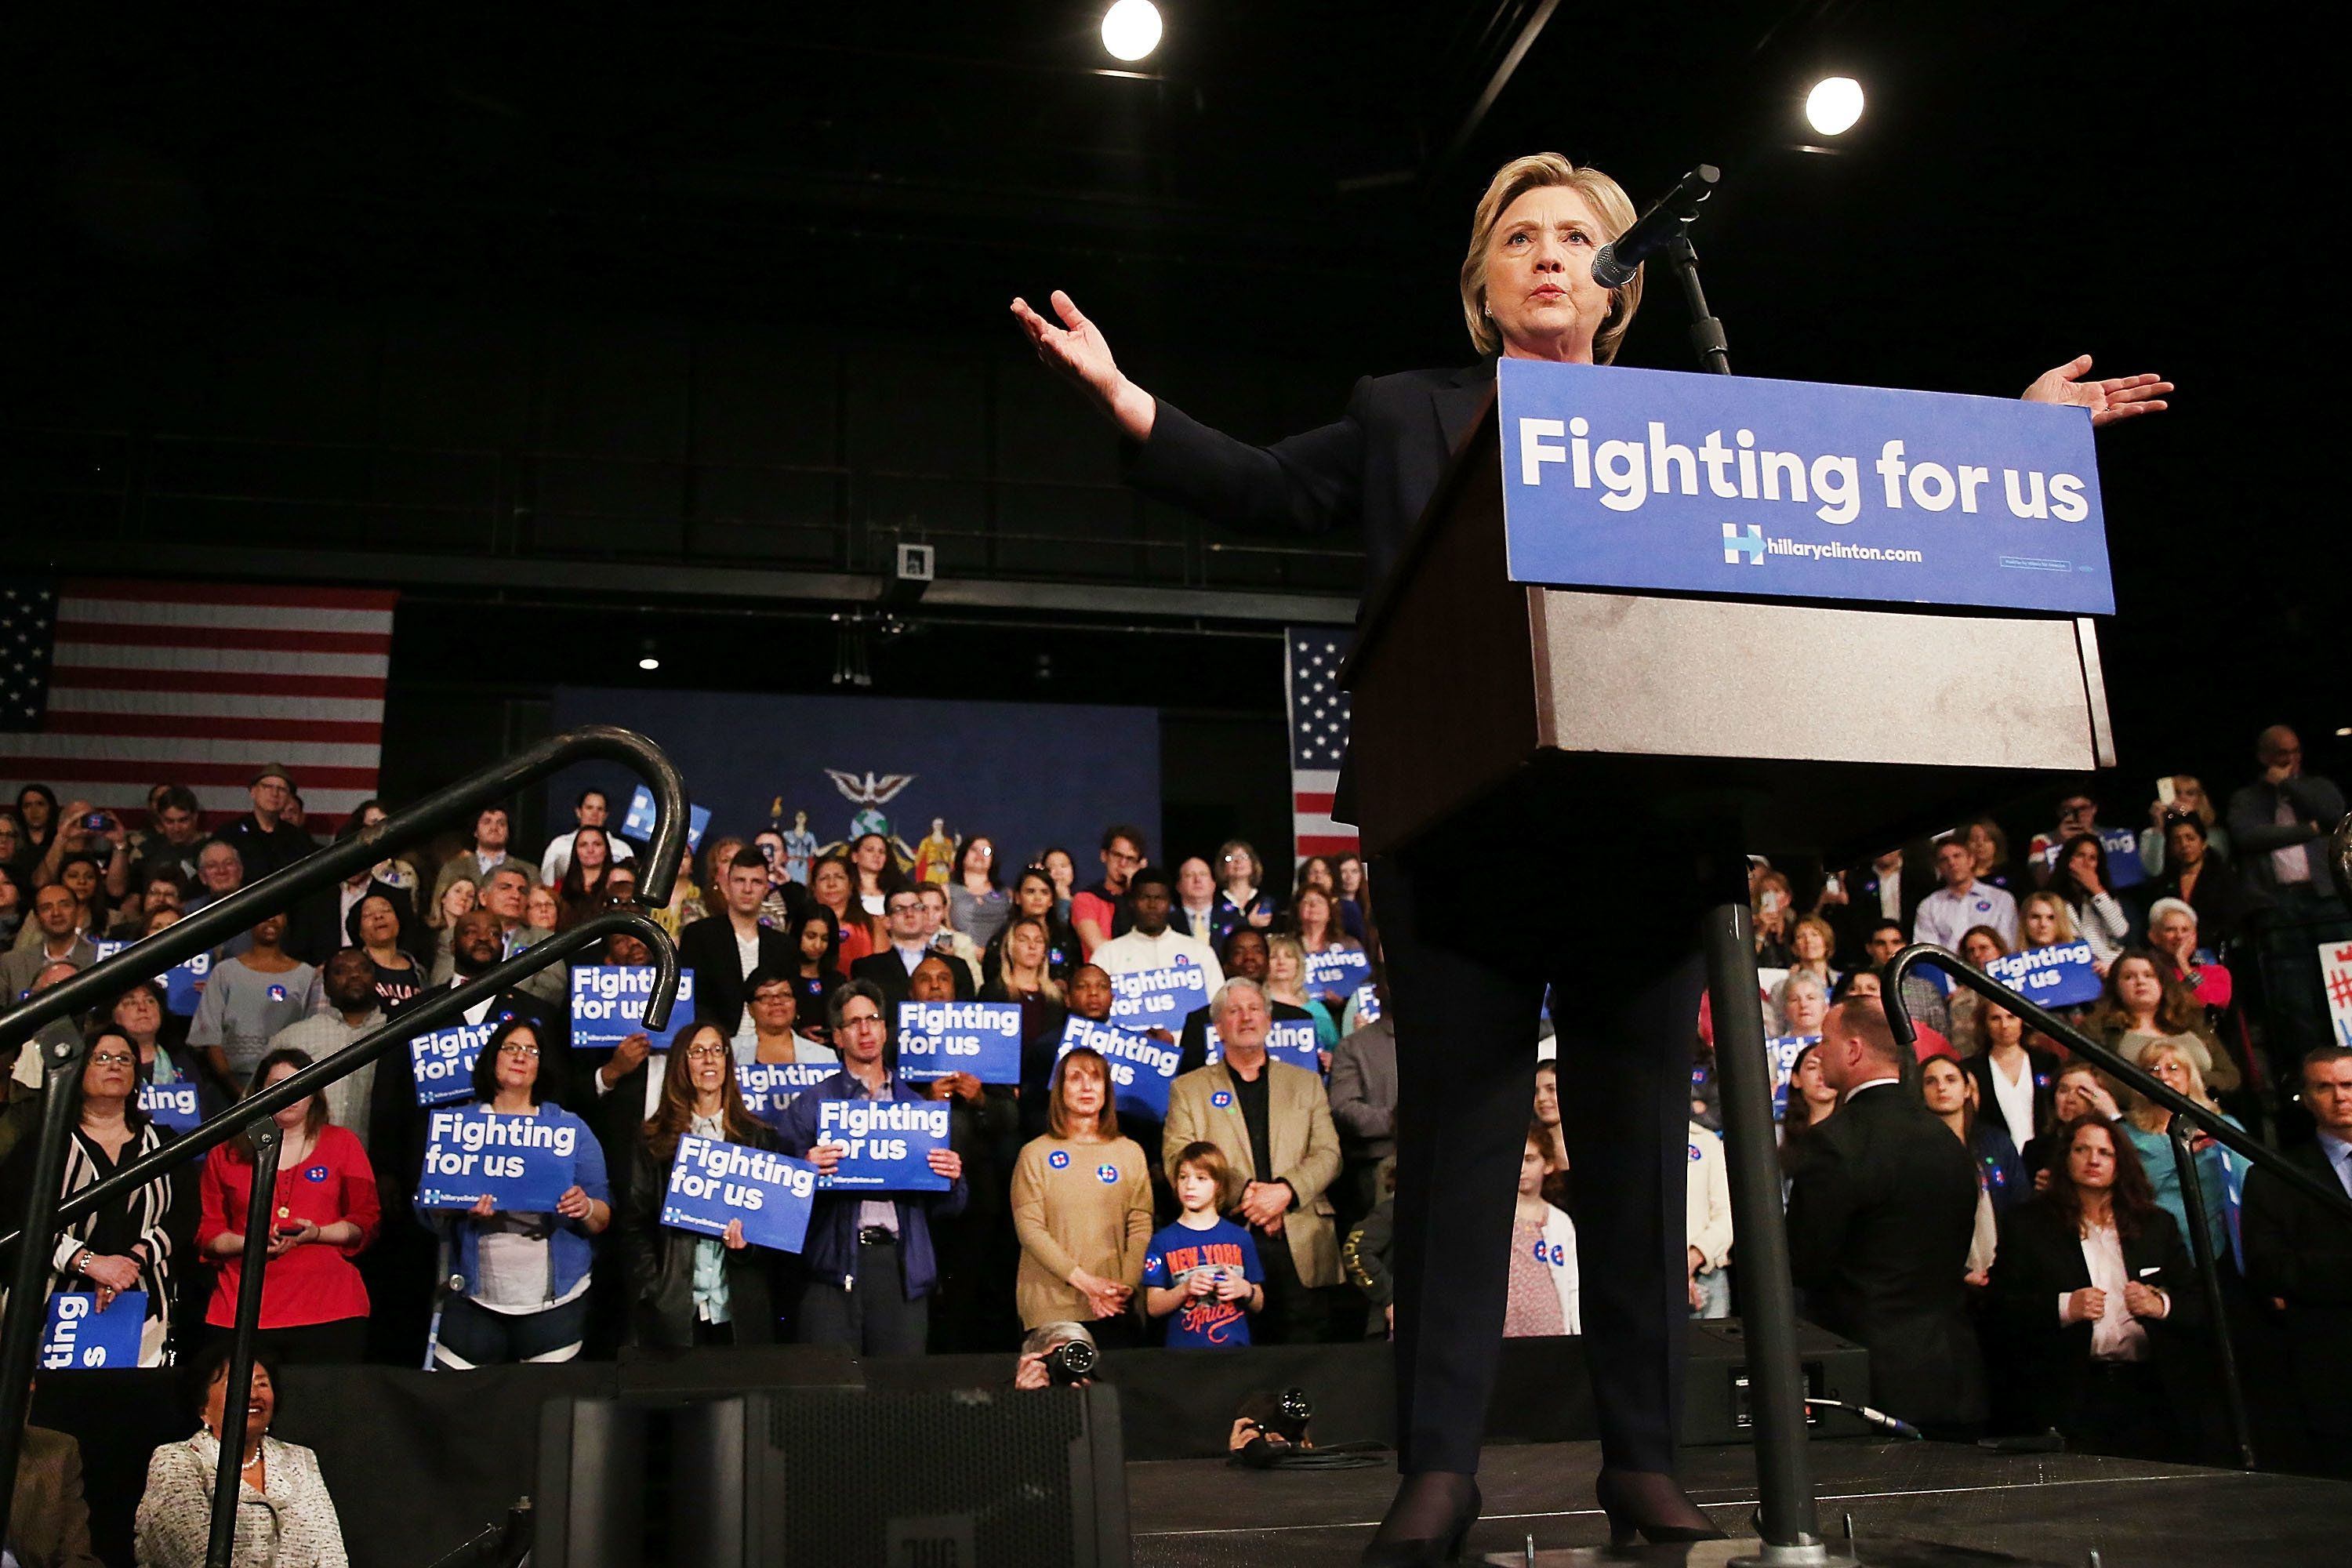 PURCHASE, NEW YORK - MARCH 31:  Democratic presidential candidate Hillary Clinton speaks at SUNY Purchase on March 31, 2016 in Purchase, New York. Clinton gave a speech to both students and supporters that covered a host of domestic and international issues.ump. New York will hold its primaries on April 19.  (Photo by Spencer Platt/Getty Images)